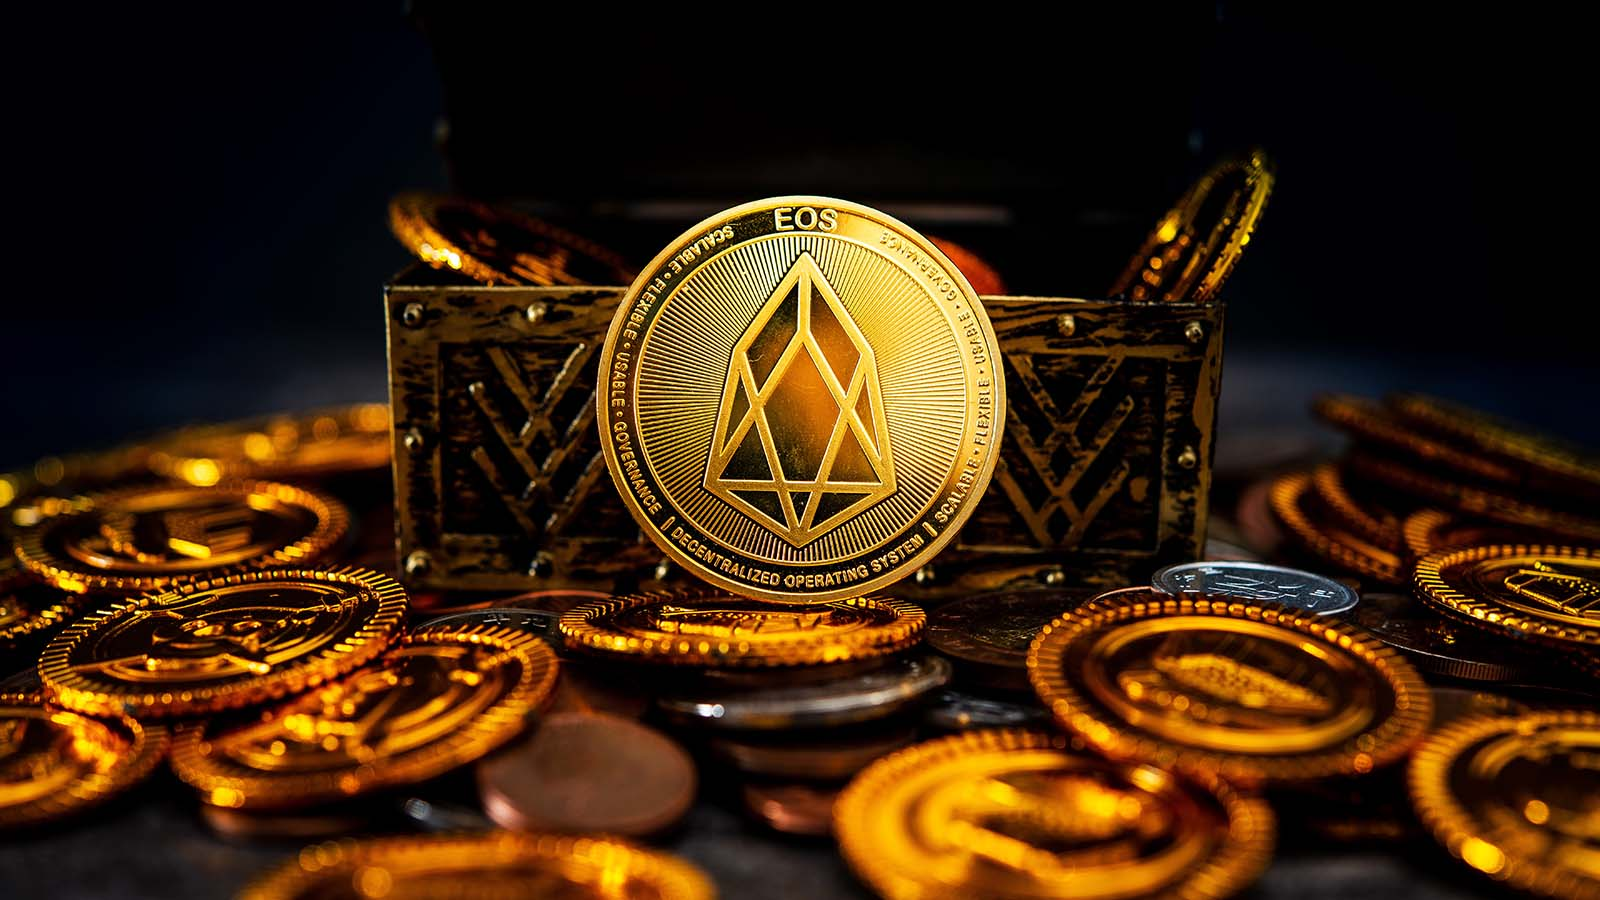 EOS Strives to Become the Palantir of Blockchain